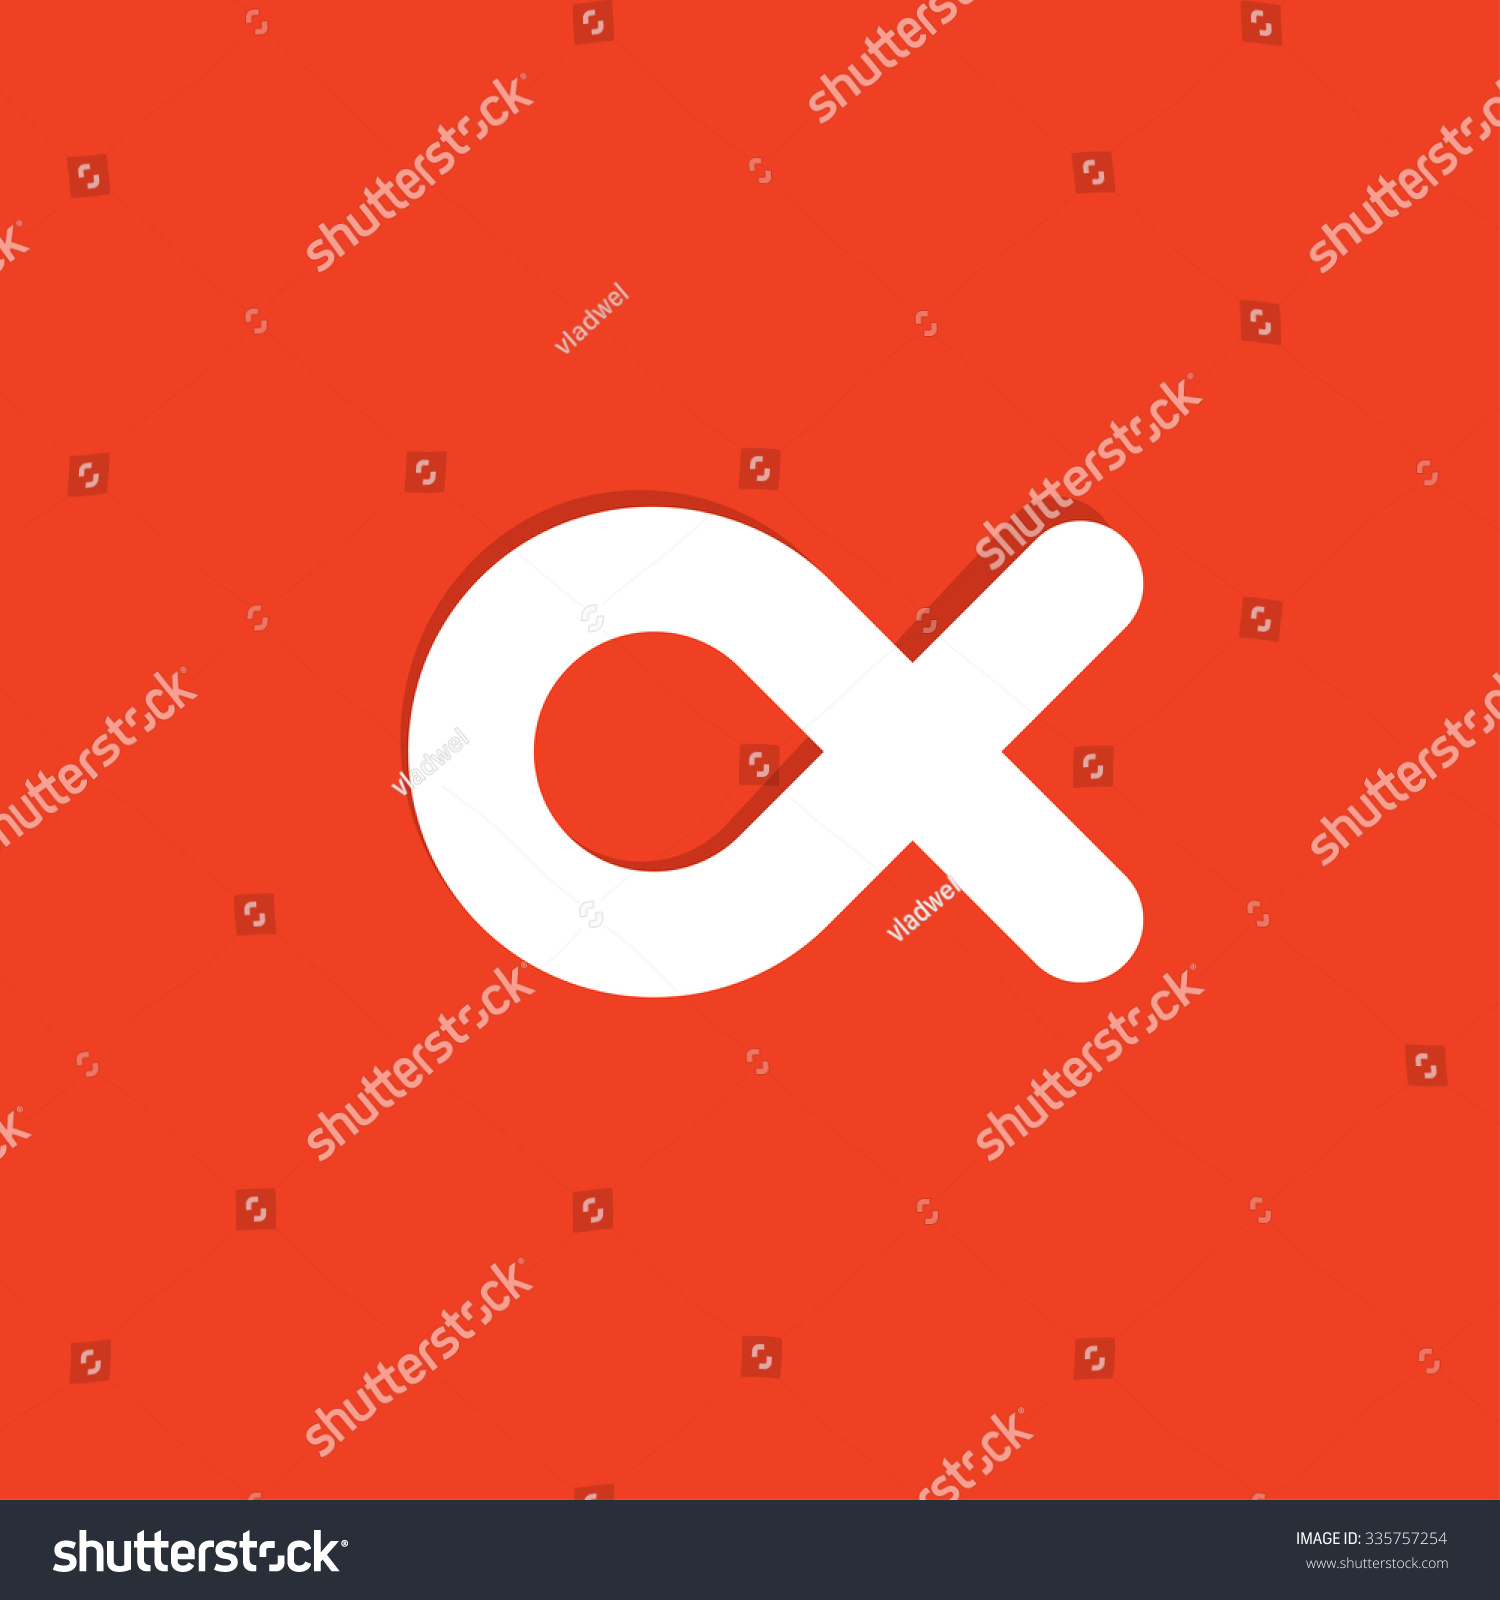 Simple Fish Vector Logo Template Design Stock Vector 335757254 ...